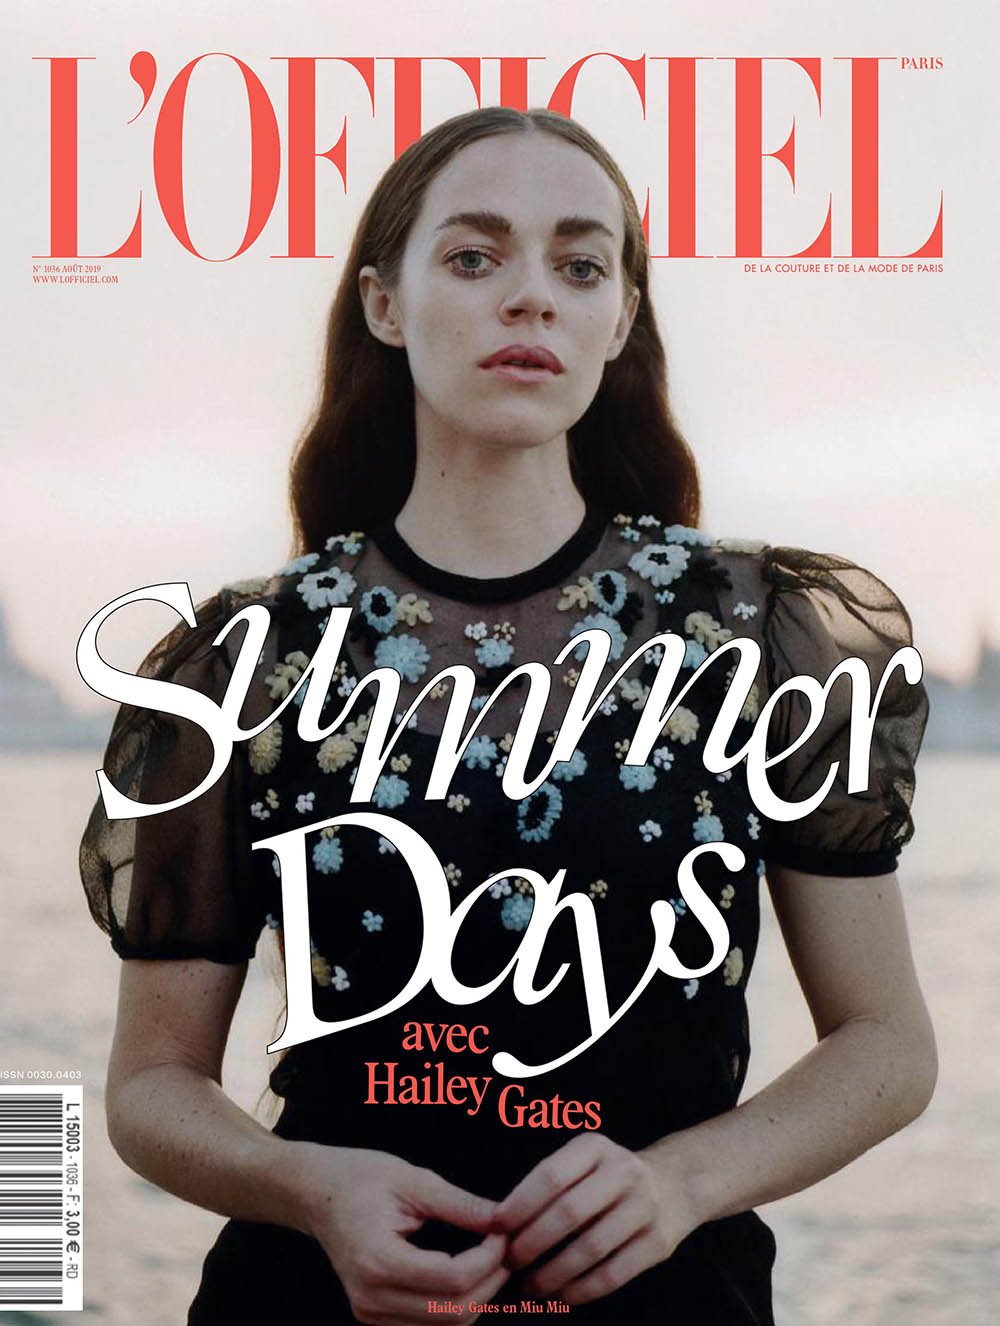 Hailey Gates covers L'Officiel Paris August 2019 by Daniyel Lowden